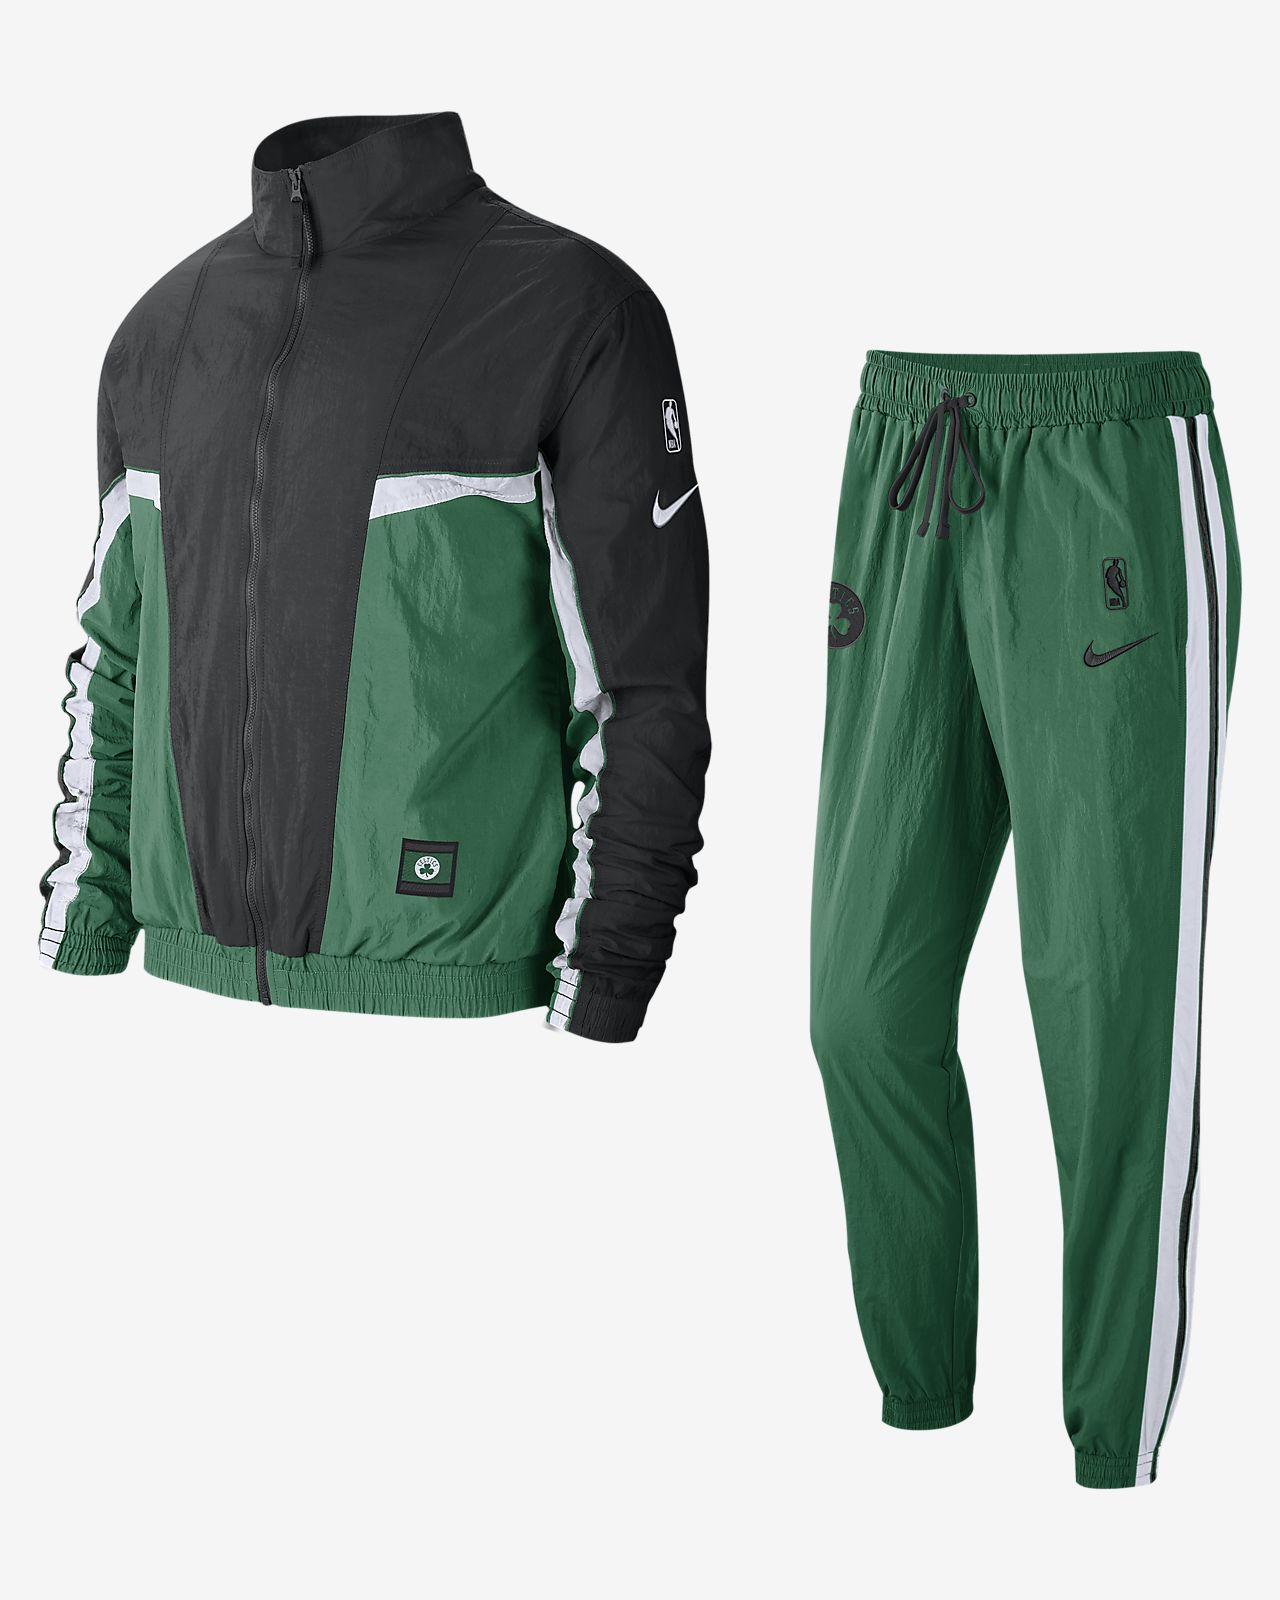 Boston Celtics Nike NBA-Trainingsanzug für Herren